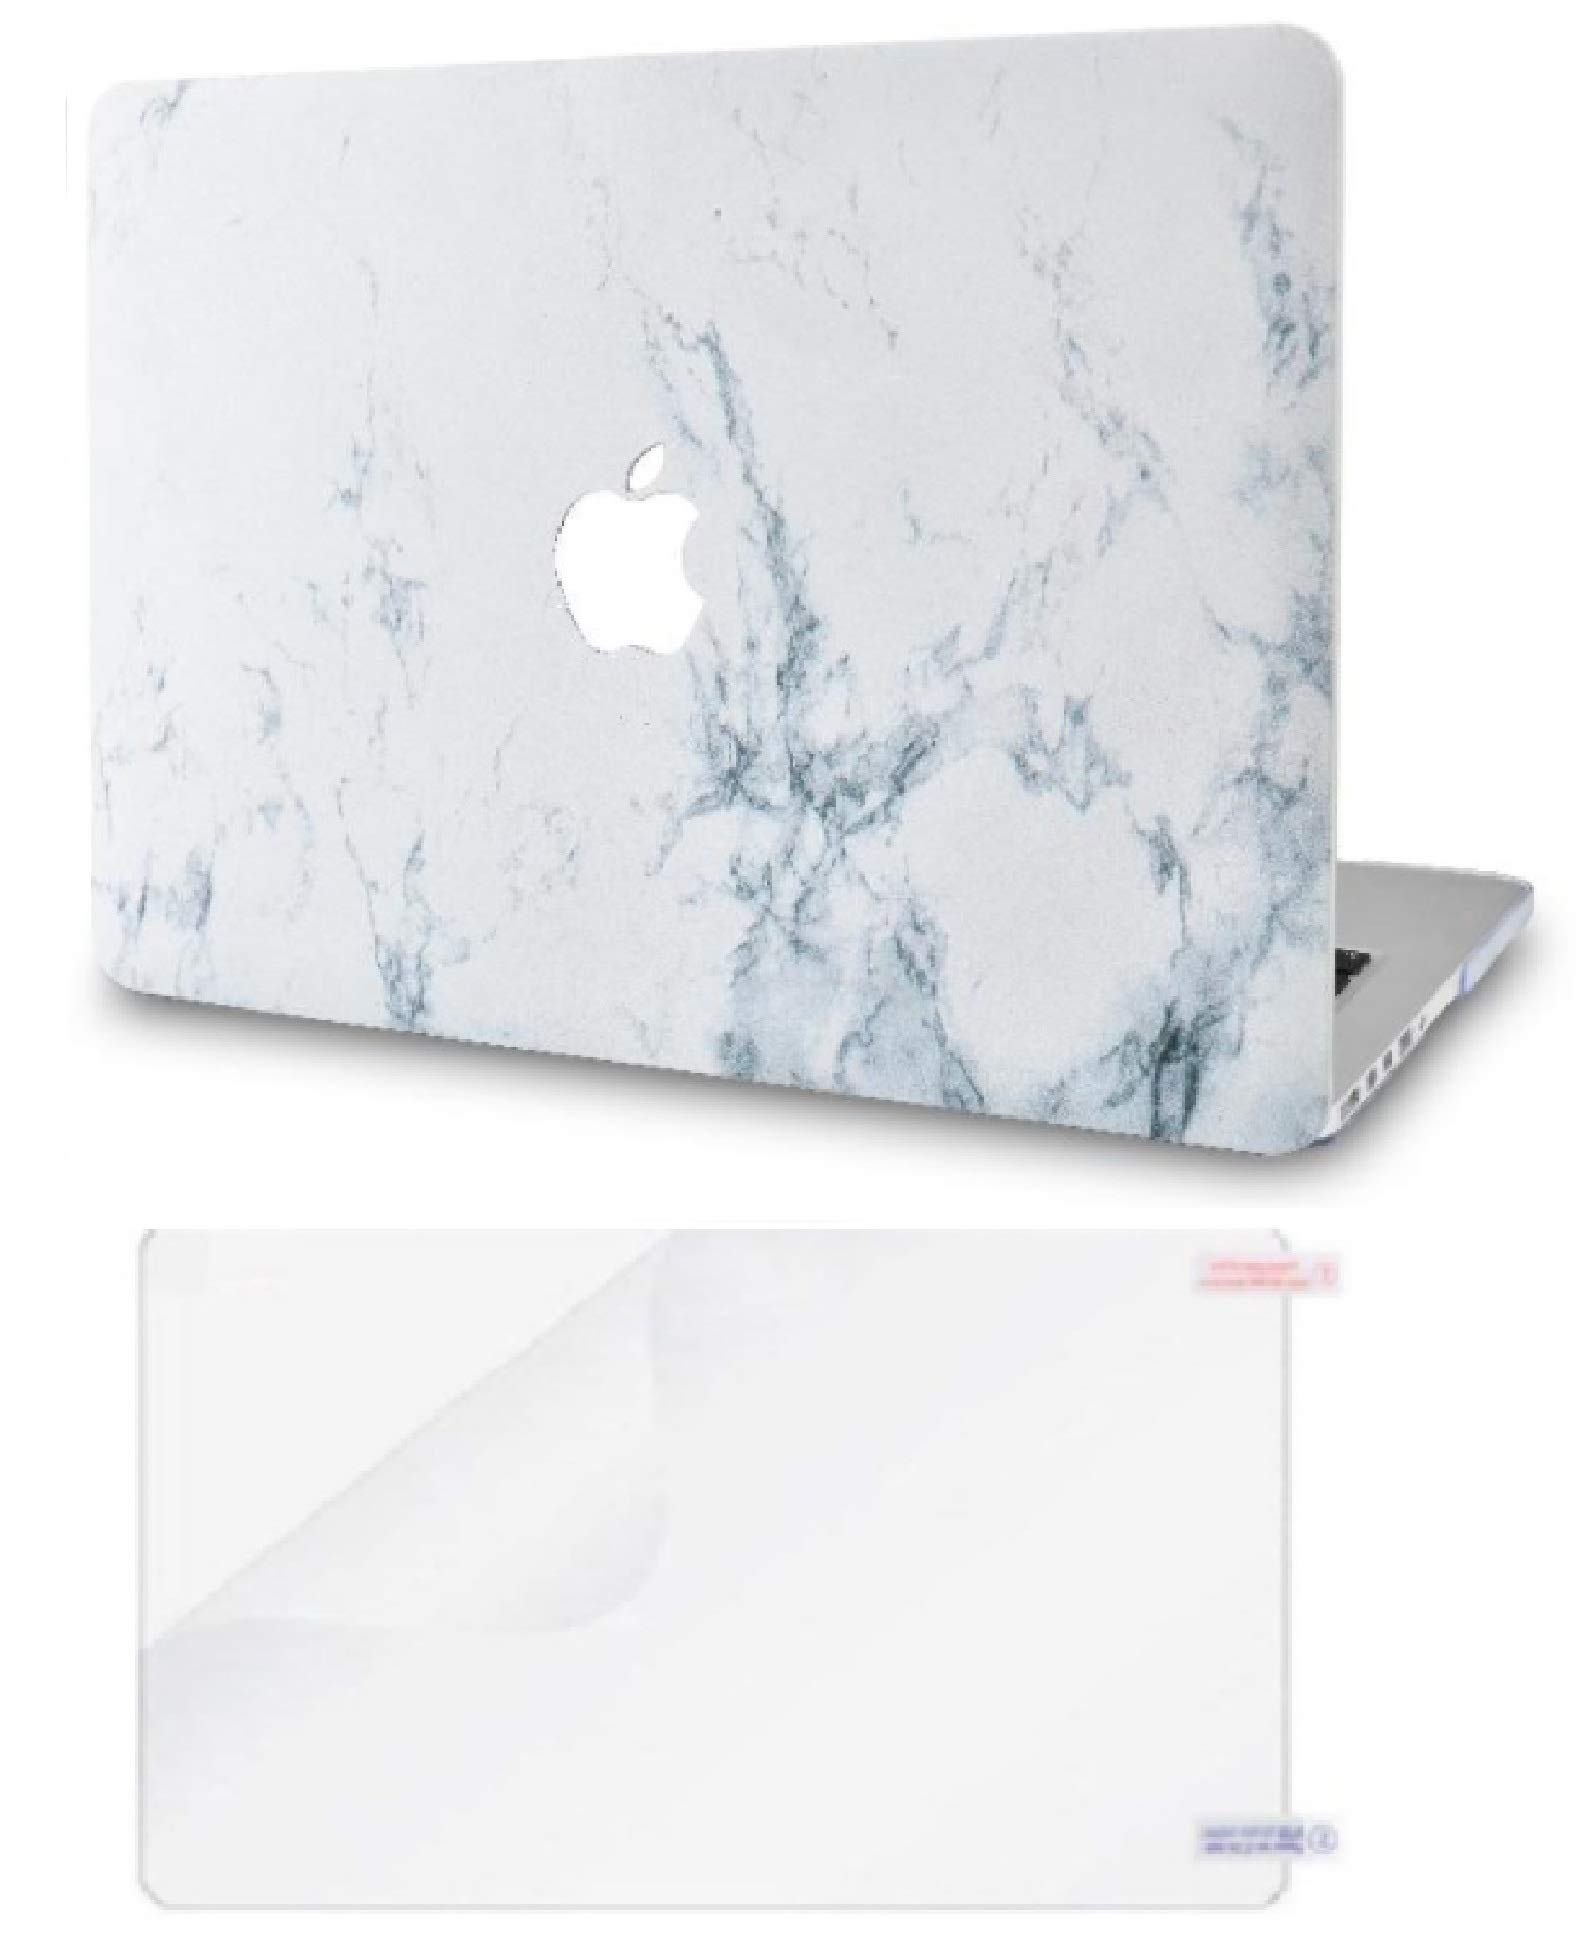 """KECC Laptop Case for MacBook Pro 13"""" (2020/2019/2018/2017/2016) w/Screen Protector Plastic Hard Shell A2159/A1989/A1706/A1708 Touch Bar 2 in 1 Bundle (White Marble)"""